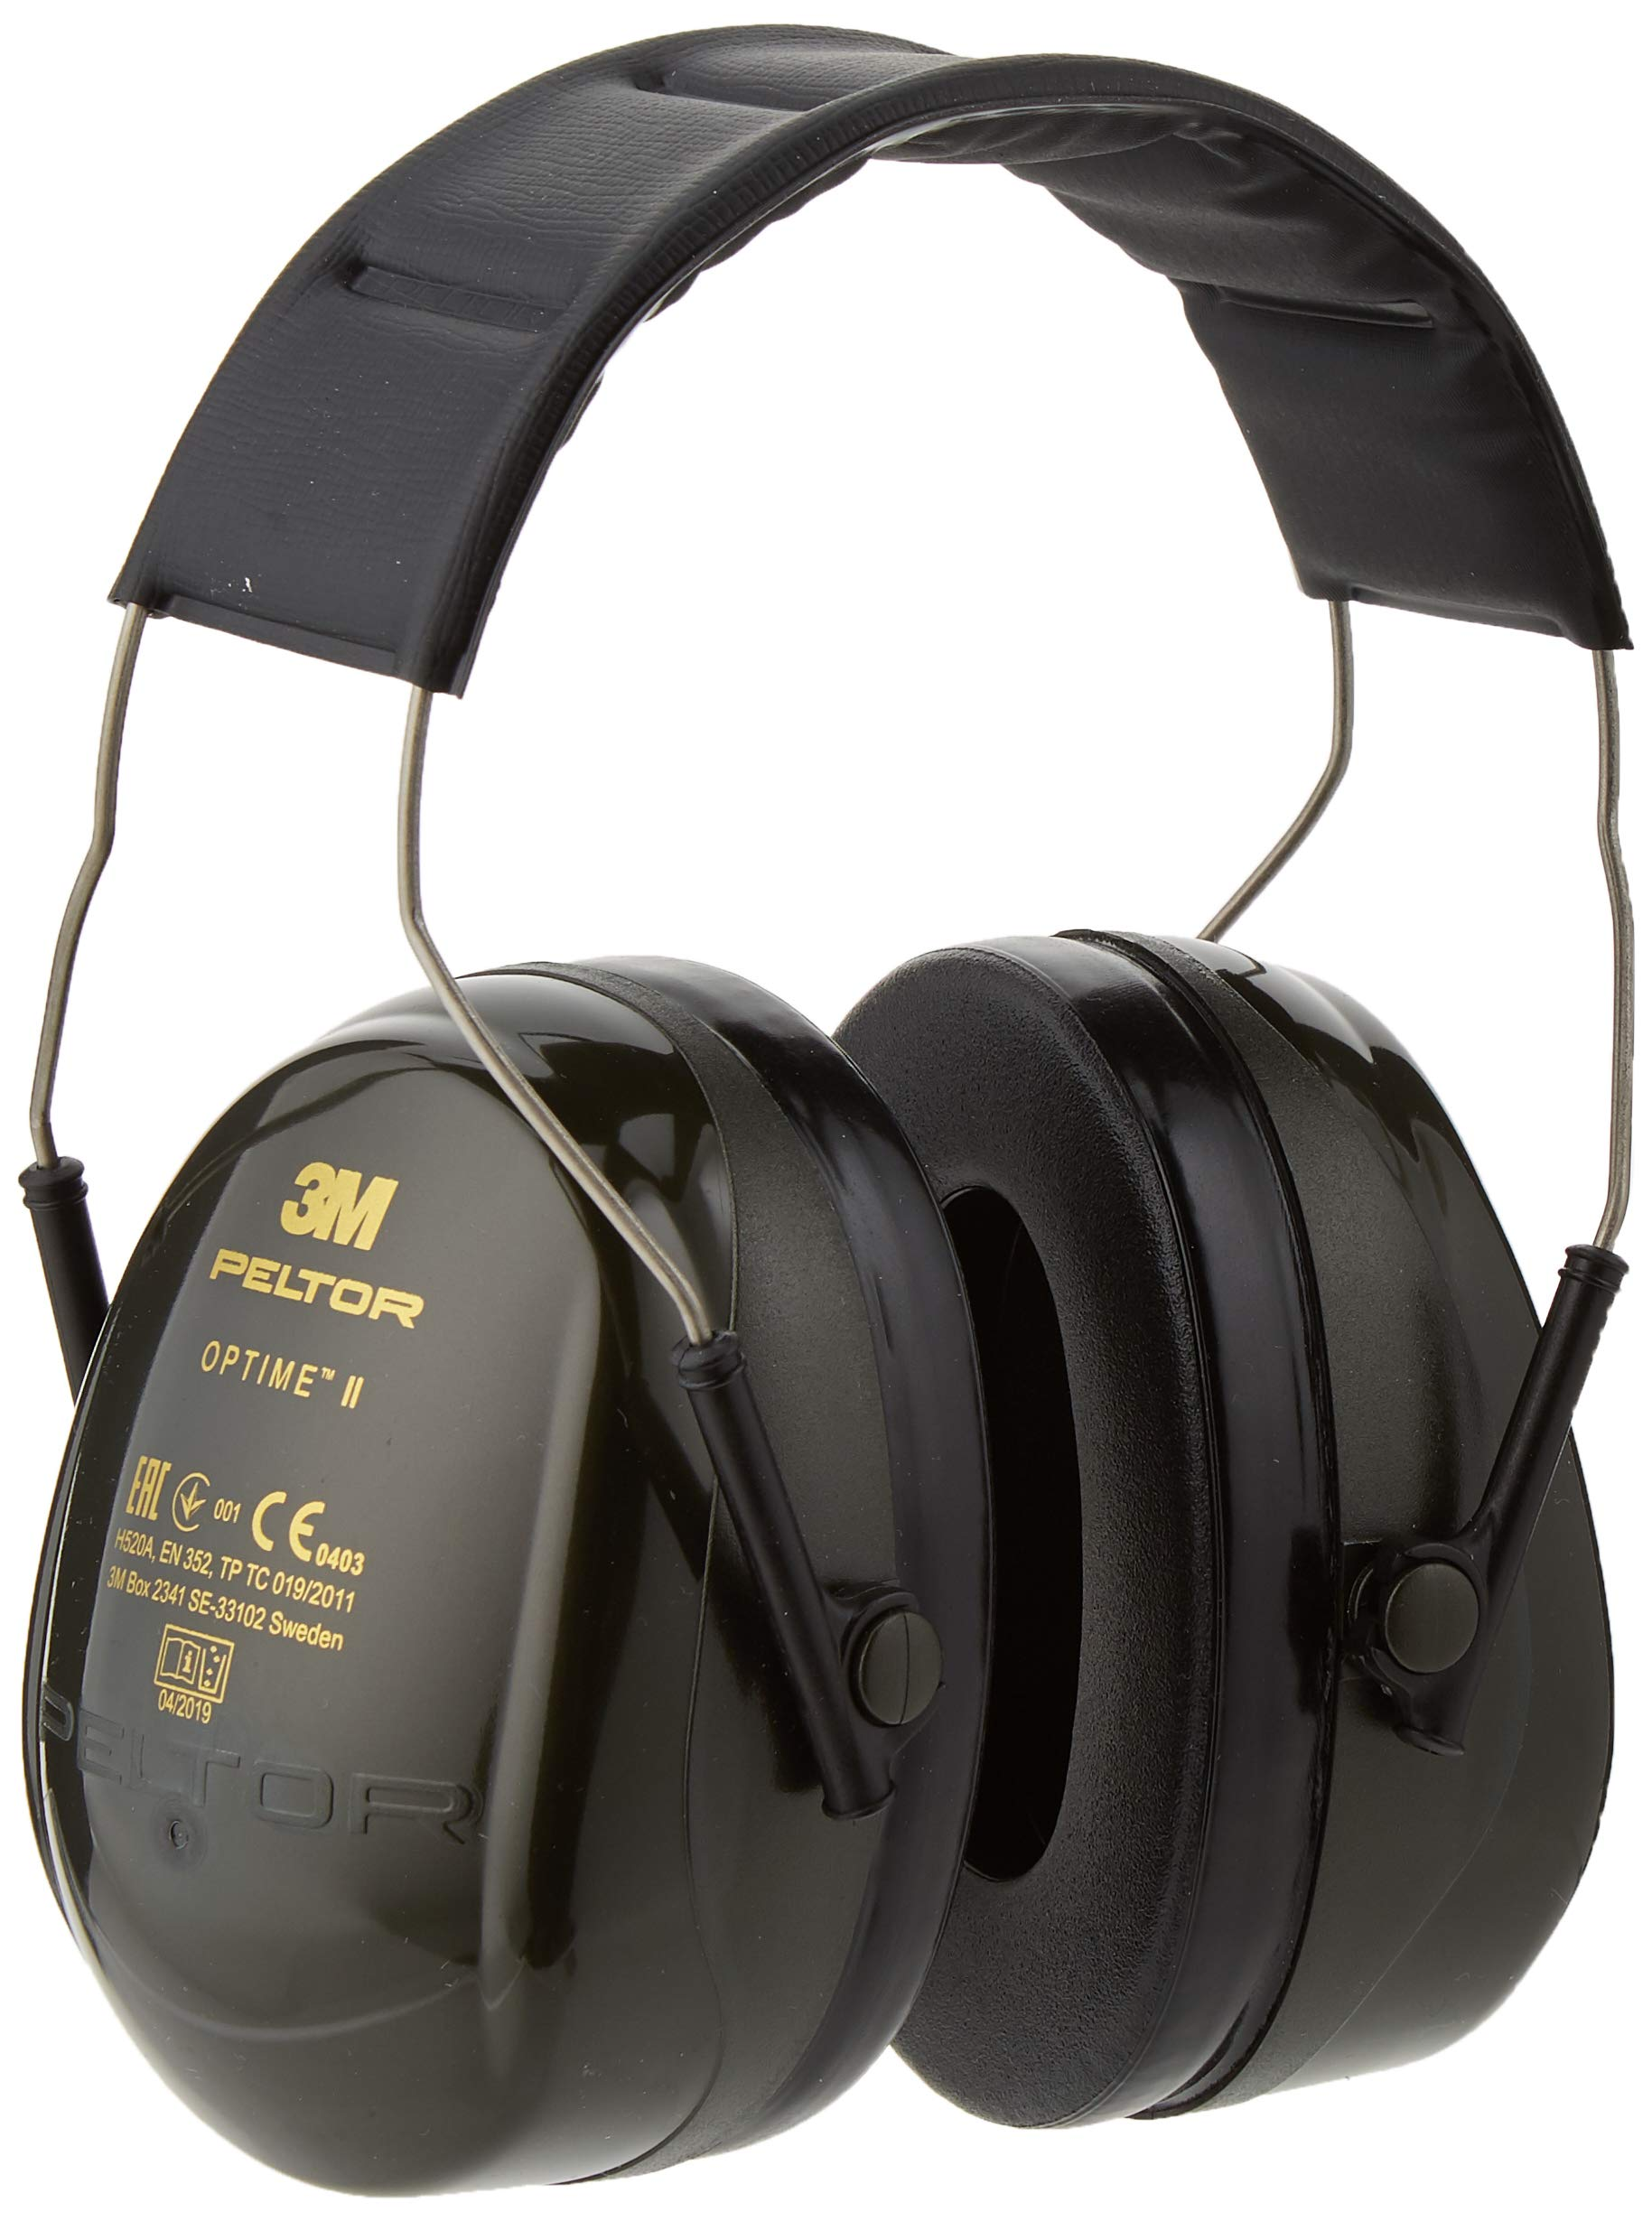 3M PELTOR EAR MUFFS OPTIME II